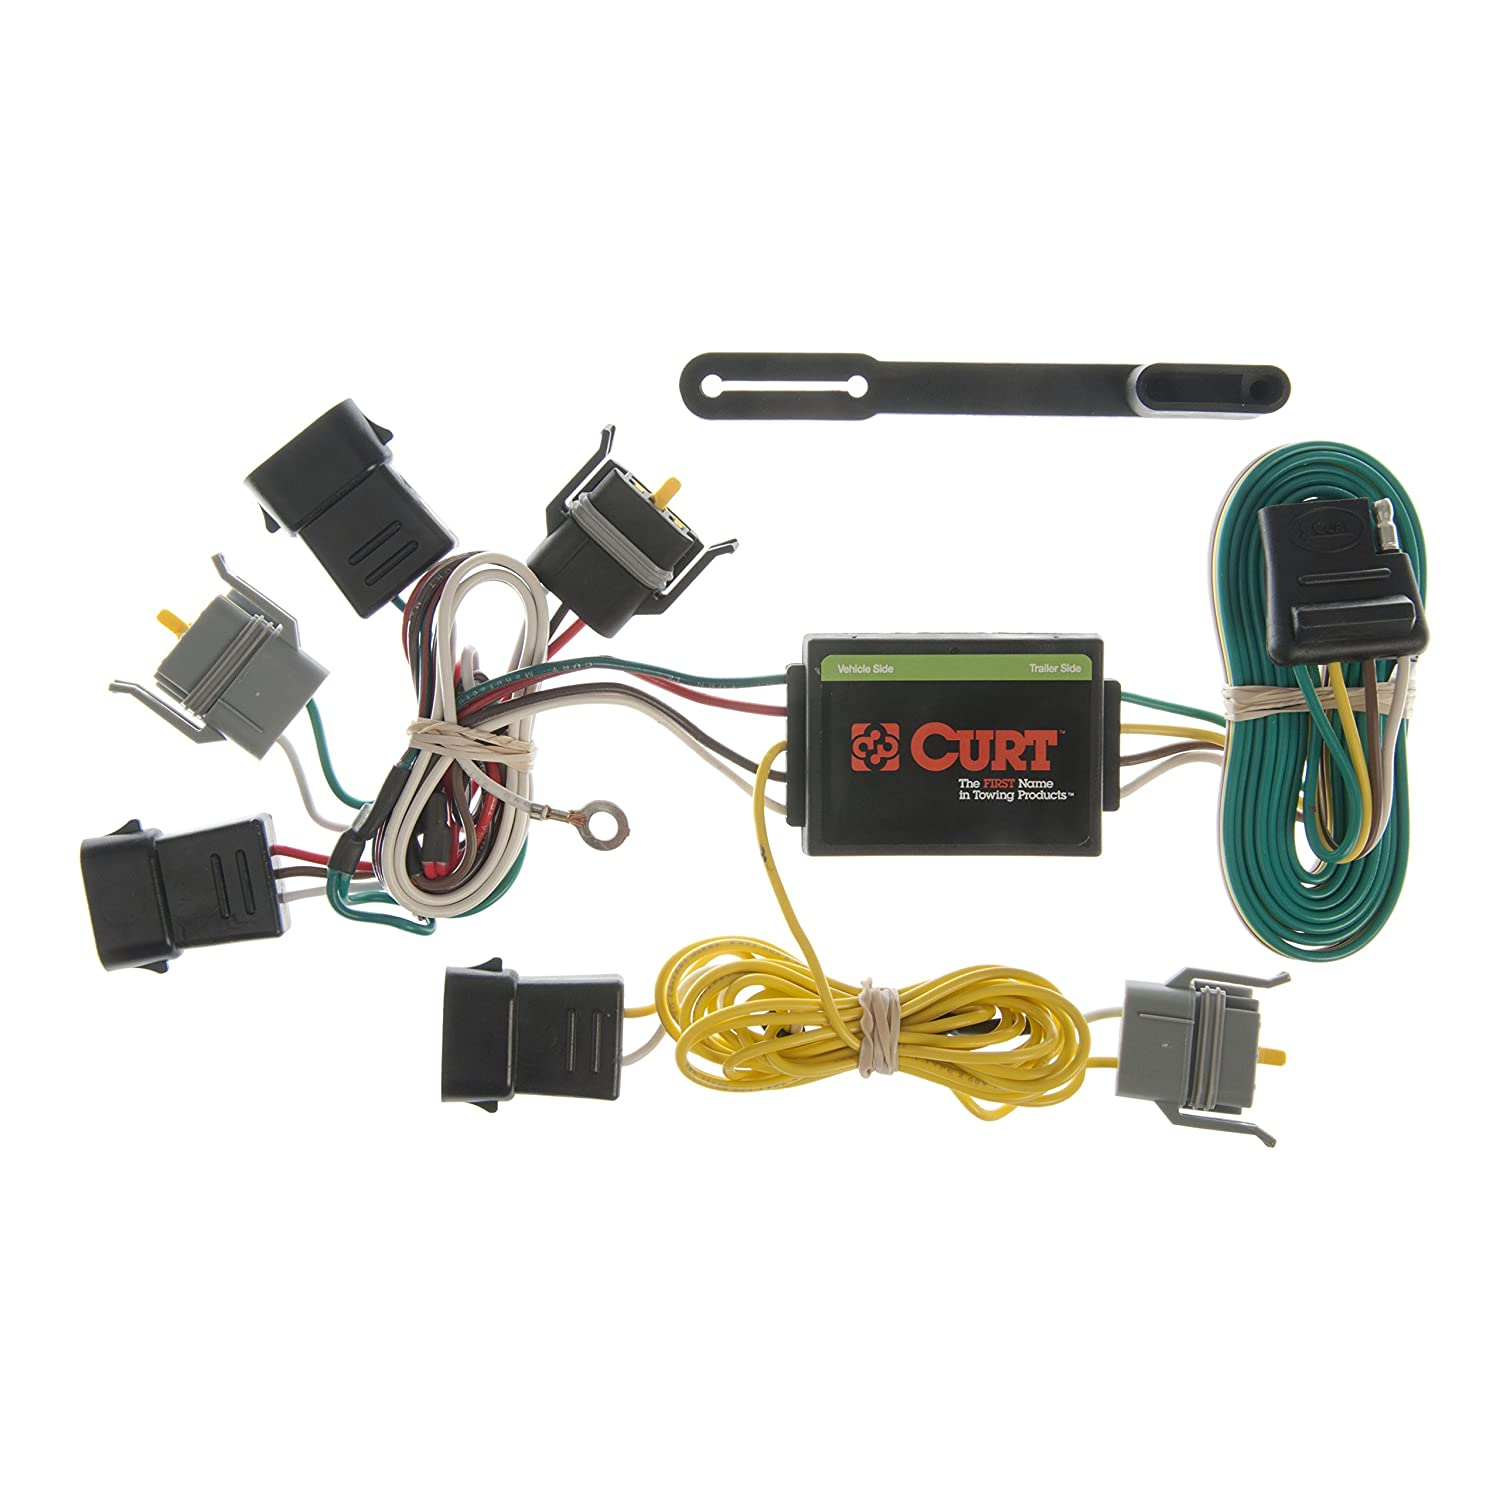 E-250 CURT Class 3 Trailer Hitch Tow Package with 2 Ball for Ford E-150 E-350